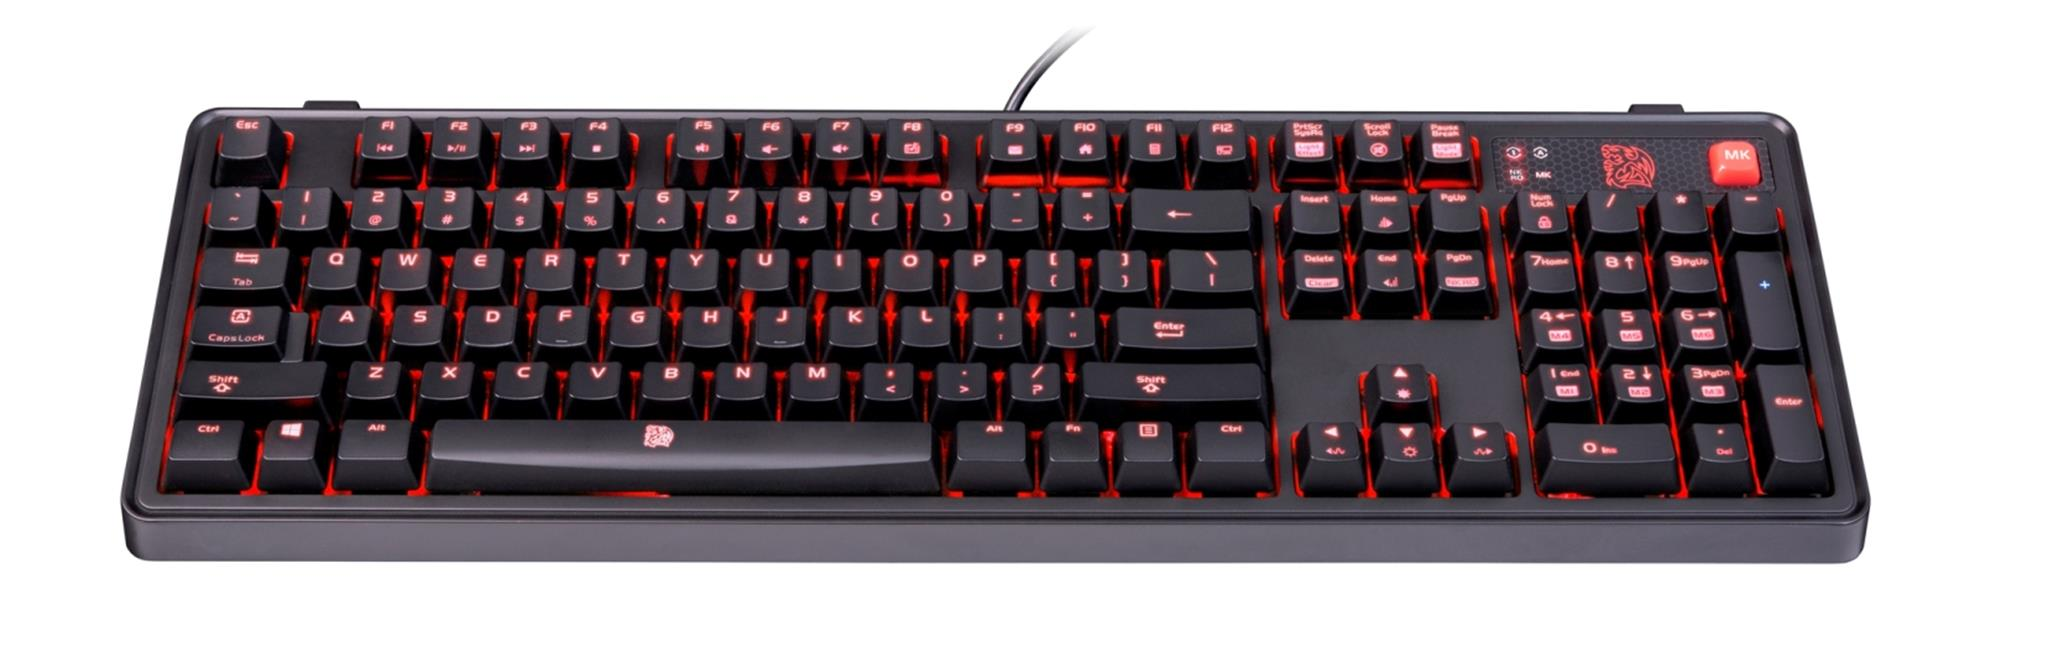 tt-esports-meka-pro-cherry-mx-mechanical-full-red-illuminated-backlighting-with-stunning-lighting-effects